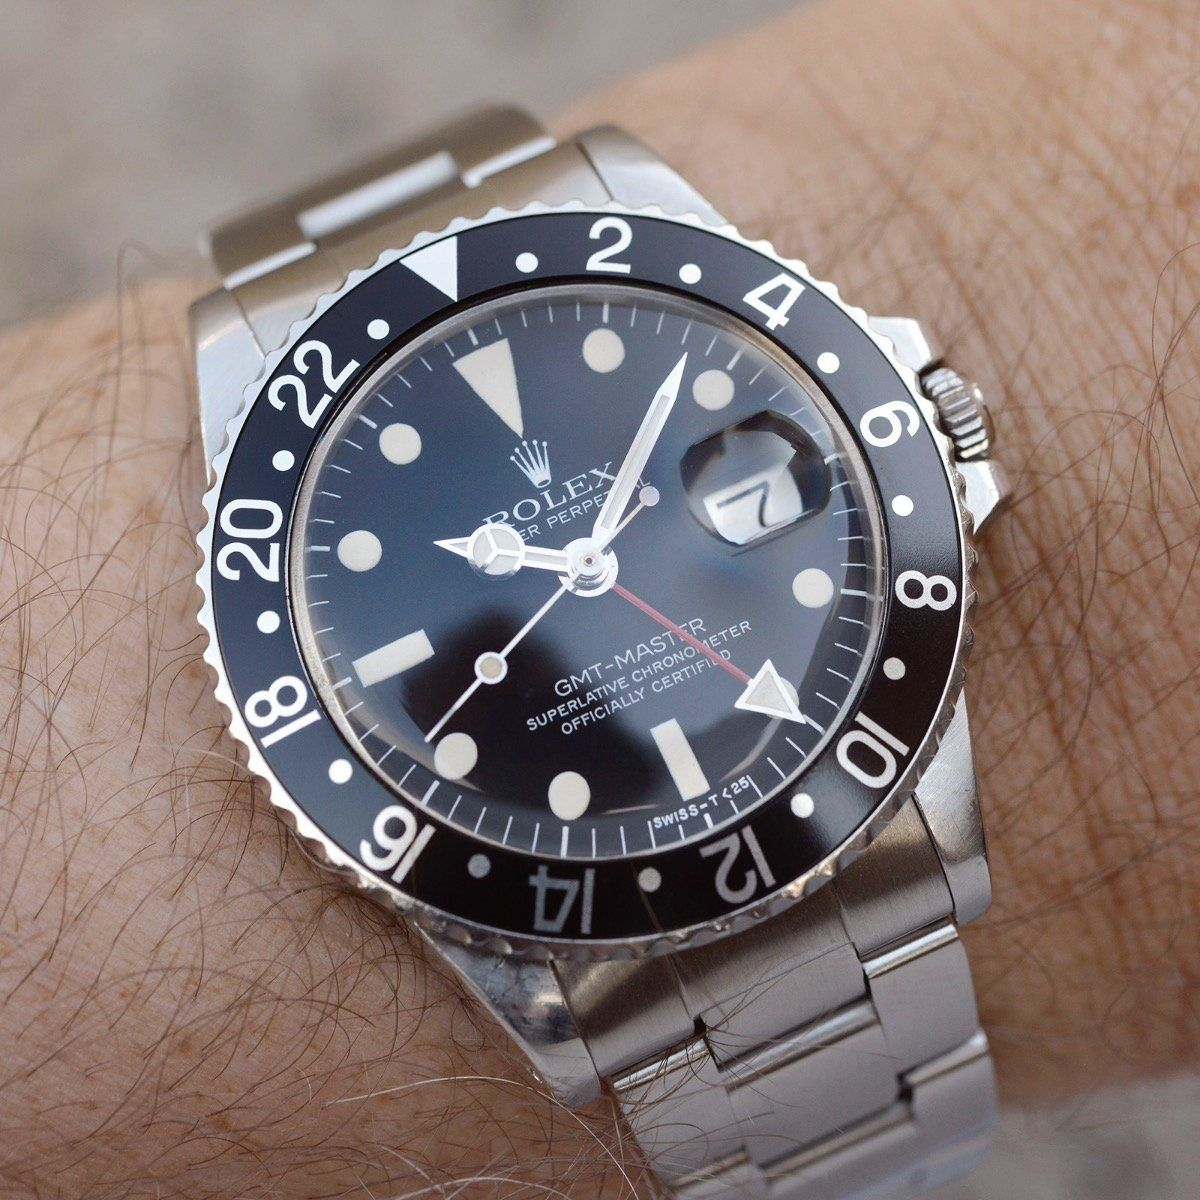 Rolex 1675 Mk5 Maxi Dial GMT Master Rolex, Watches for